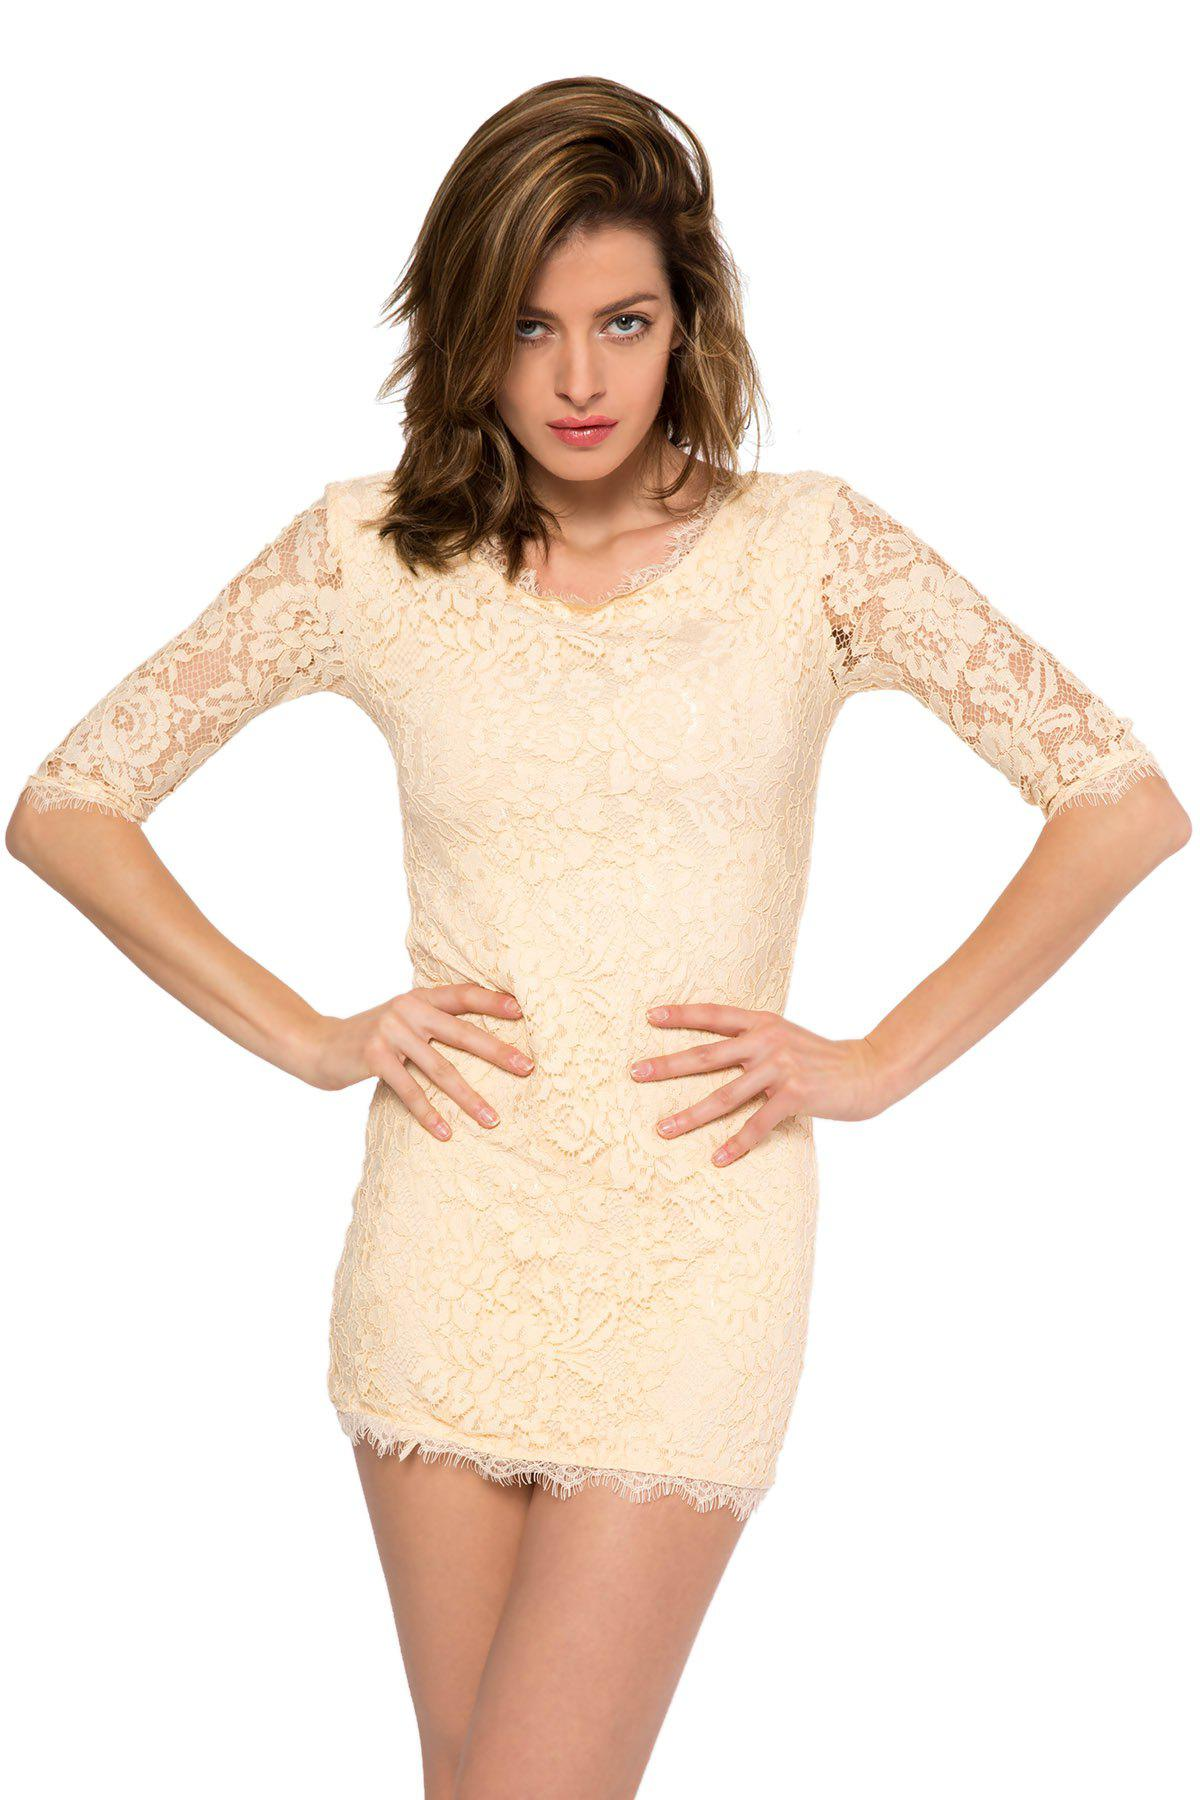 Trendy Style Scoop Collar 3/4 Sleeve Solid Color Slimming Women's Lace Dress - BEIGE 2XL